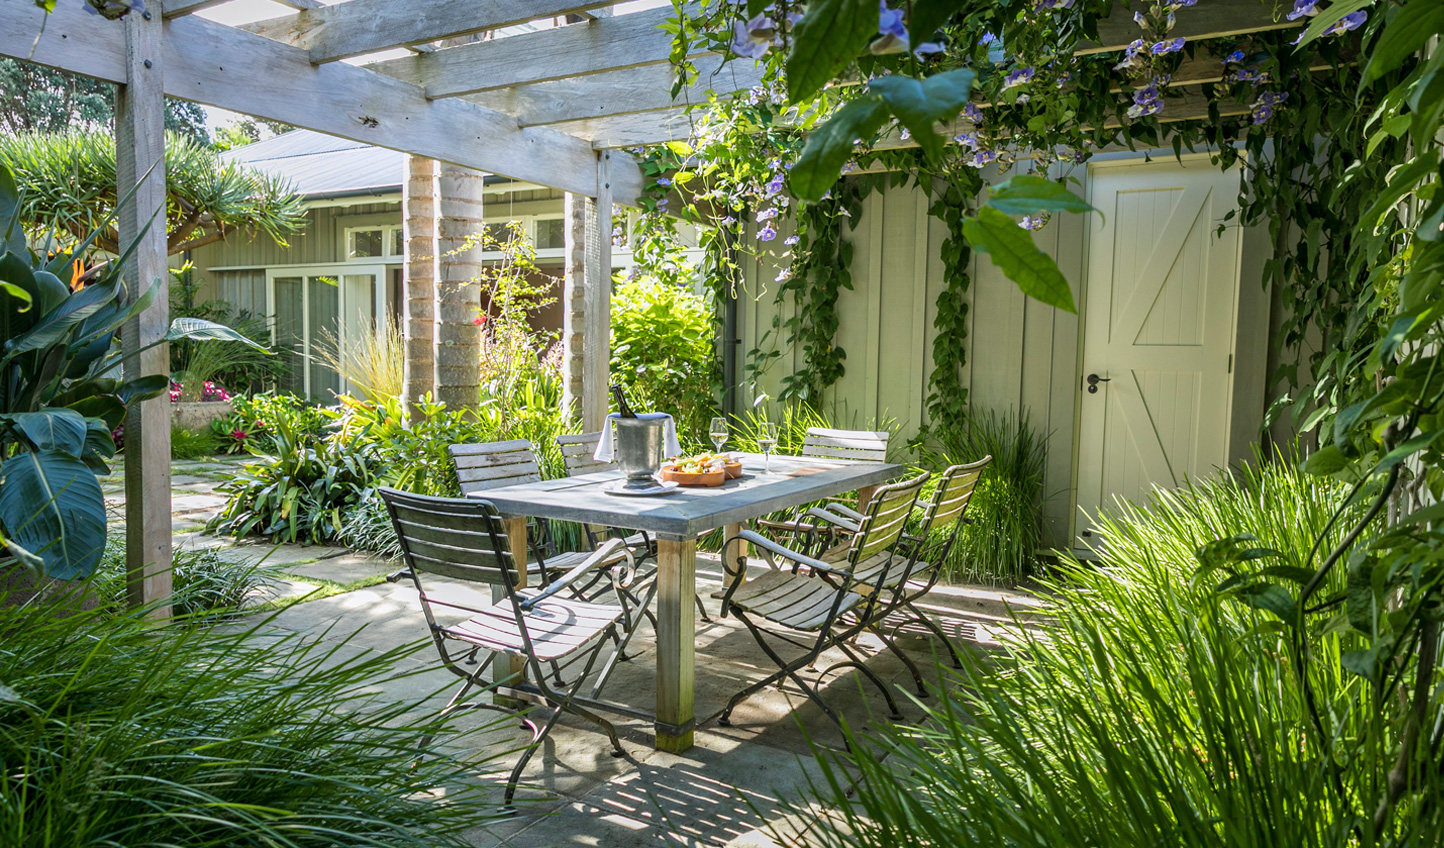 Swap the porch for the Owner's Cottage garden and while the afternoons away